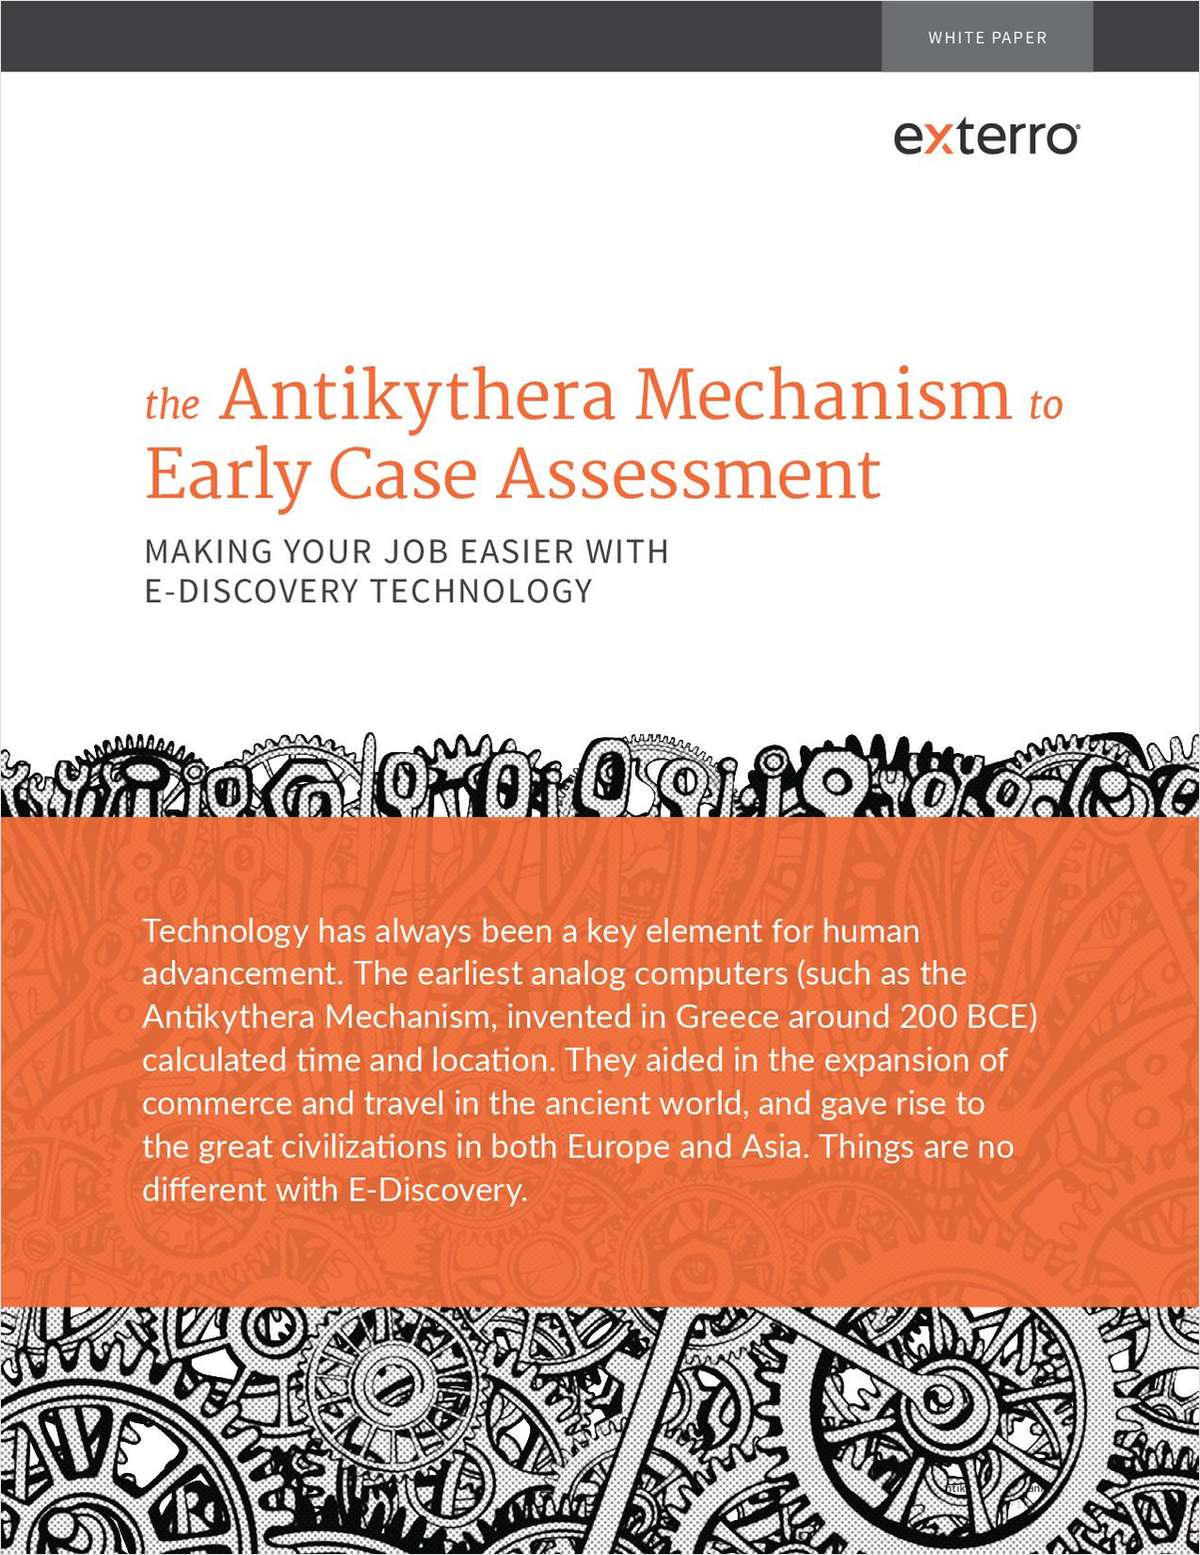 Antikythera Mechanism to ECA: Making Your Job Easier with E-Discovery Technology